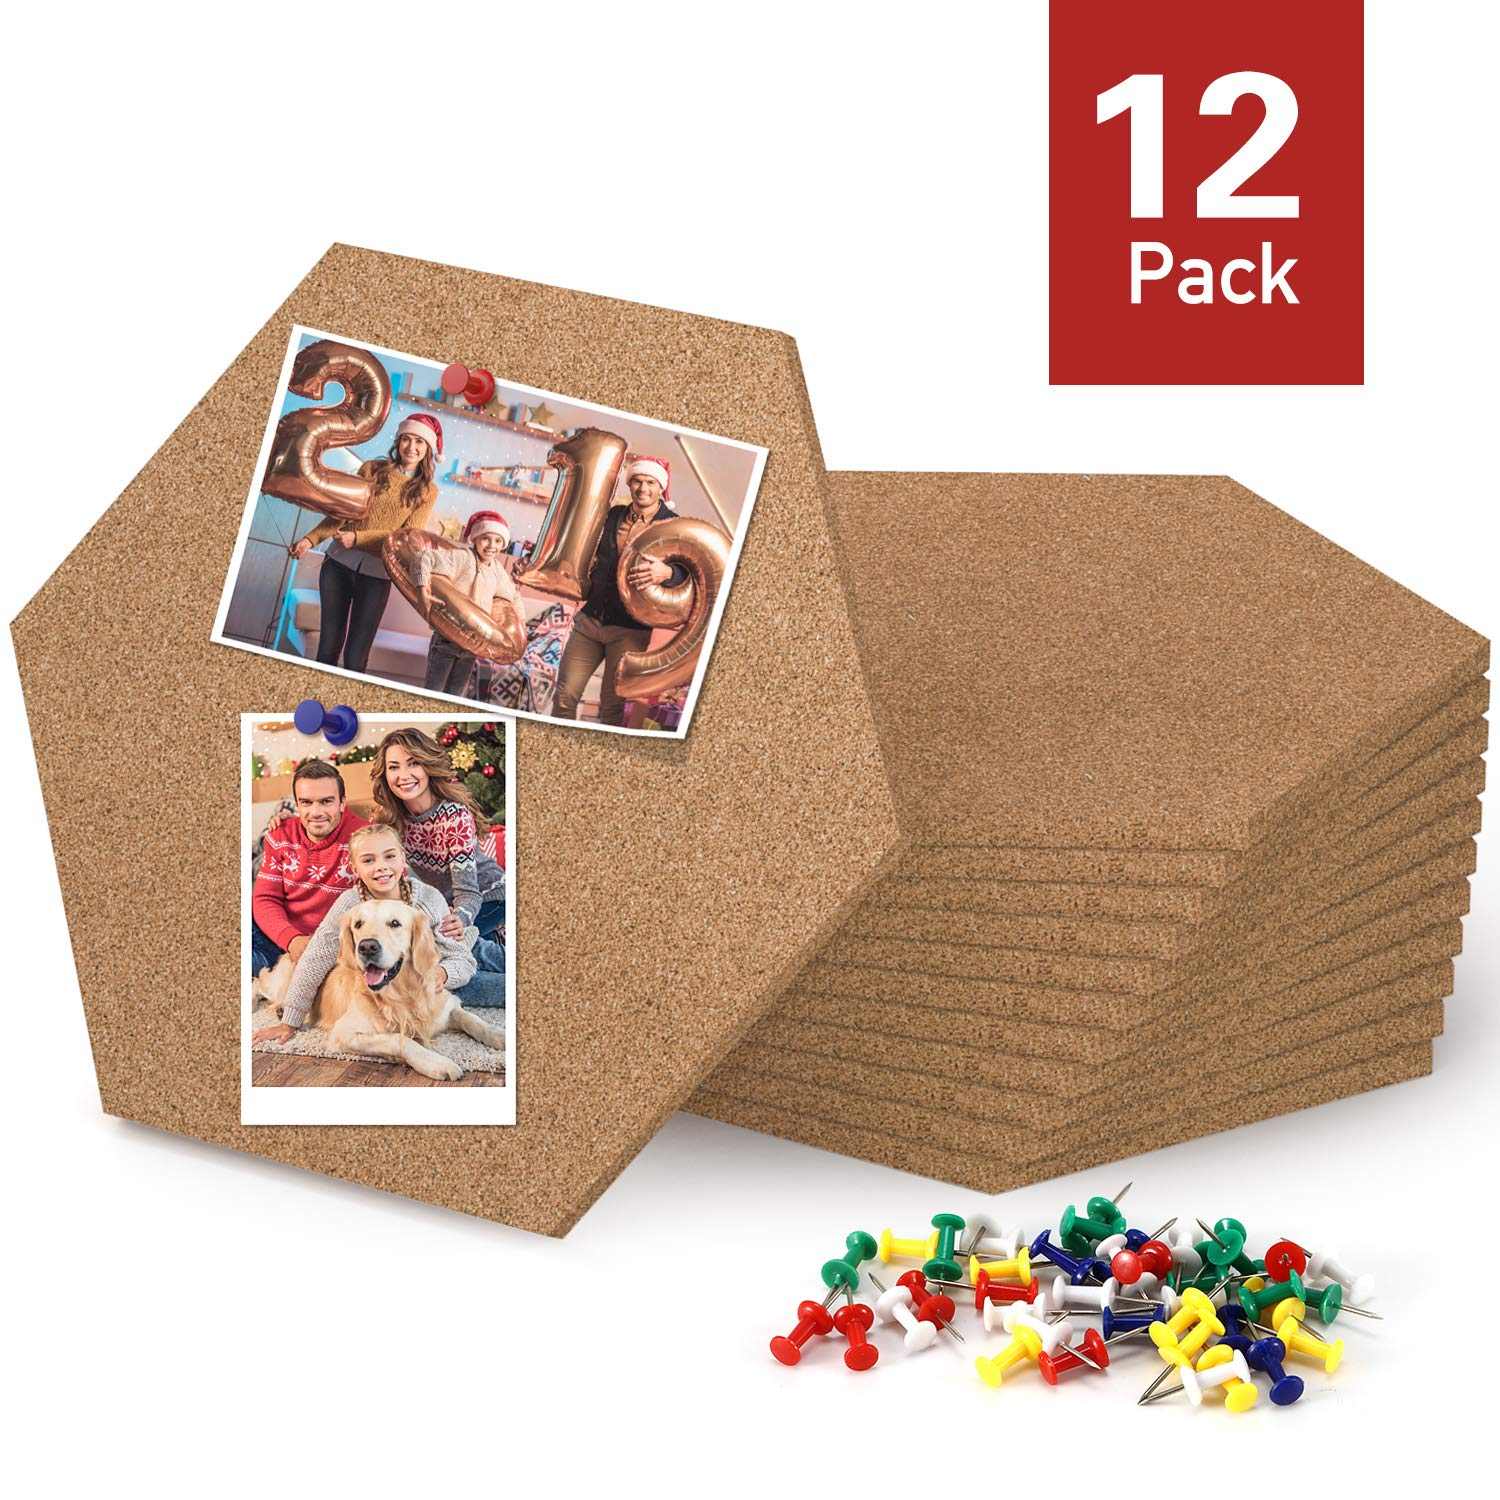 Magicfly Hexagon Self Adhesive Cork Tiles, 7.9 X 6.85 Inch Cork Board for Wall Bulletin Boards, Notes, Pictures, Office Memo and Home Decor, Pack of 12, Bonus 60 Push Pins